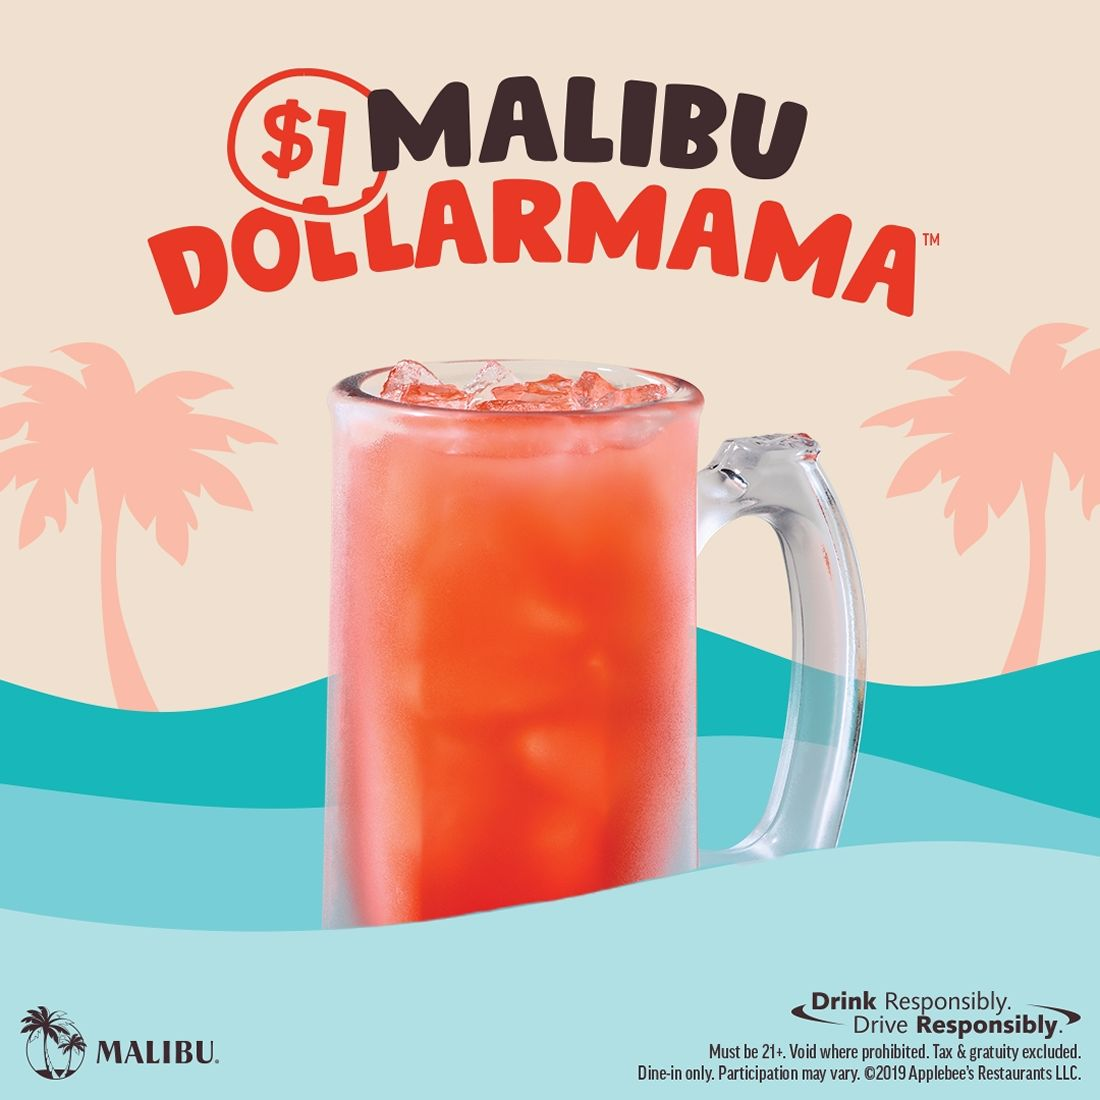 Get Your Drink on This Summer With Applebee's Malibu DOLLARMAMA